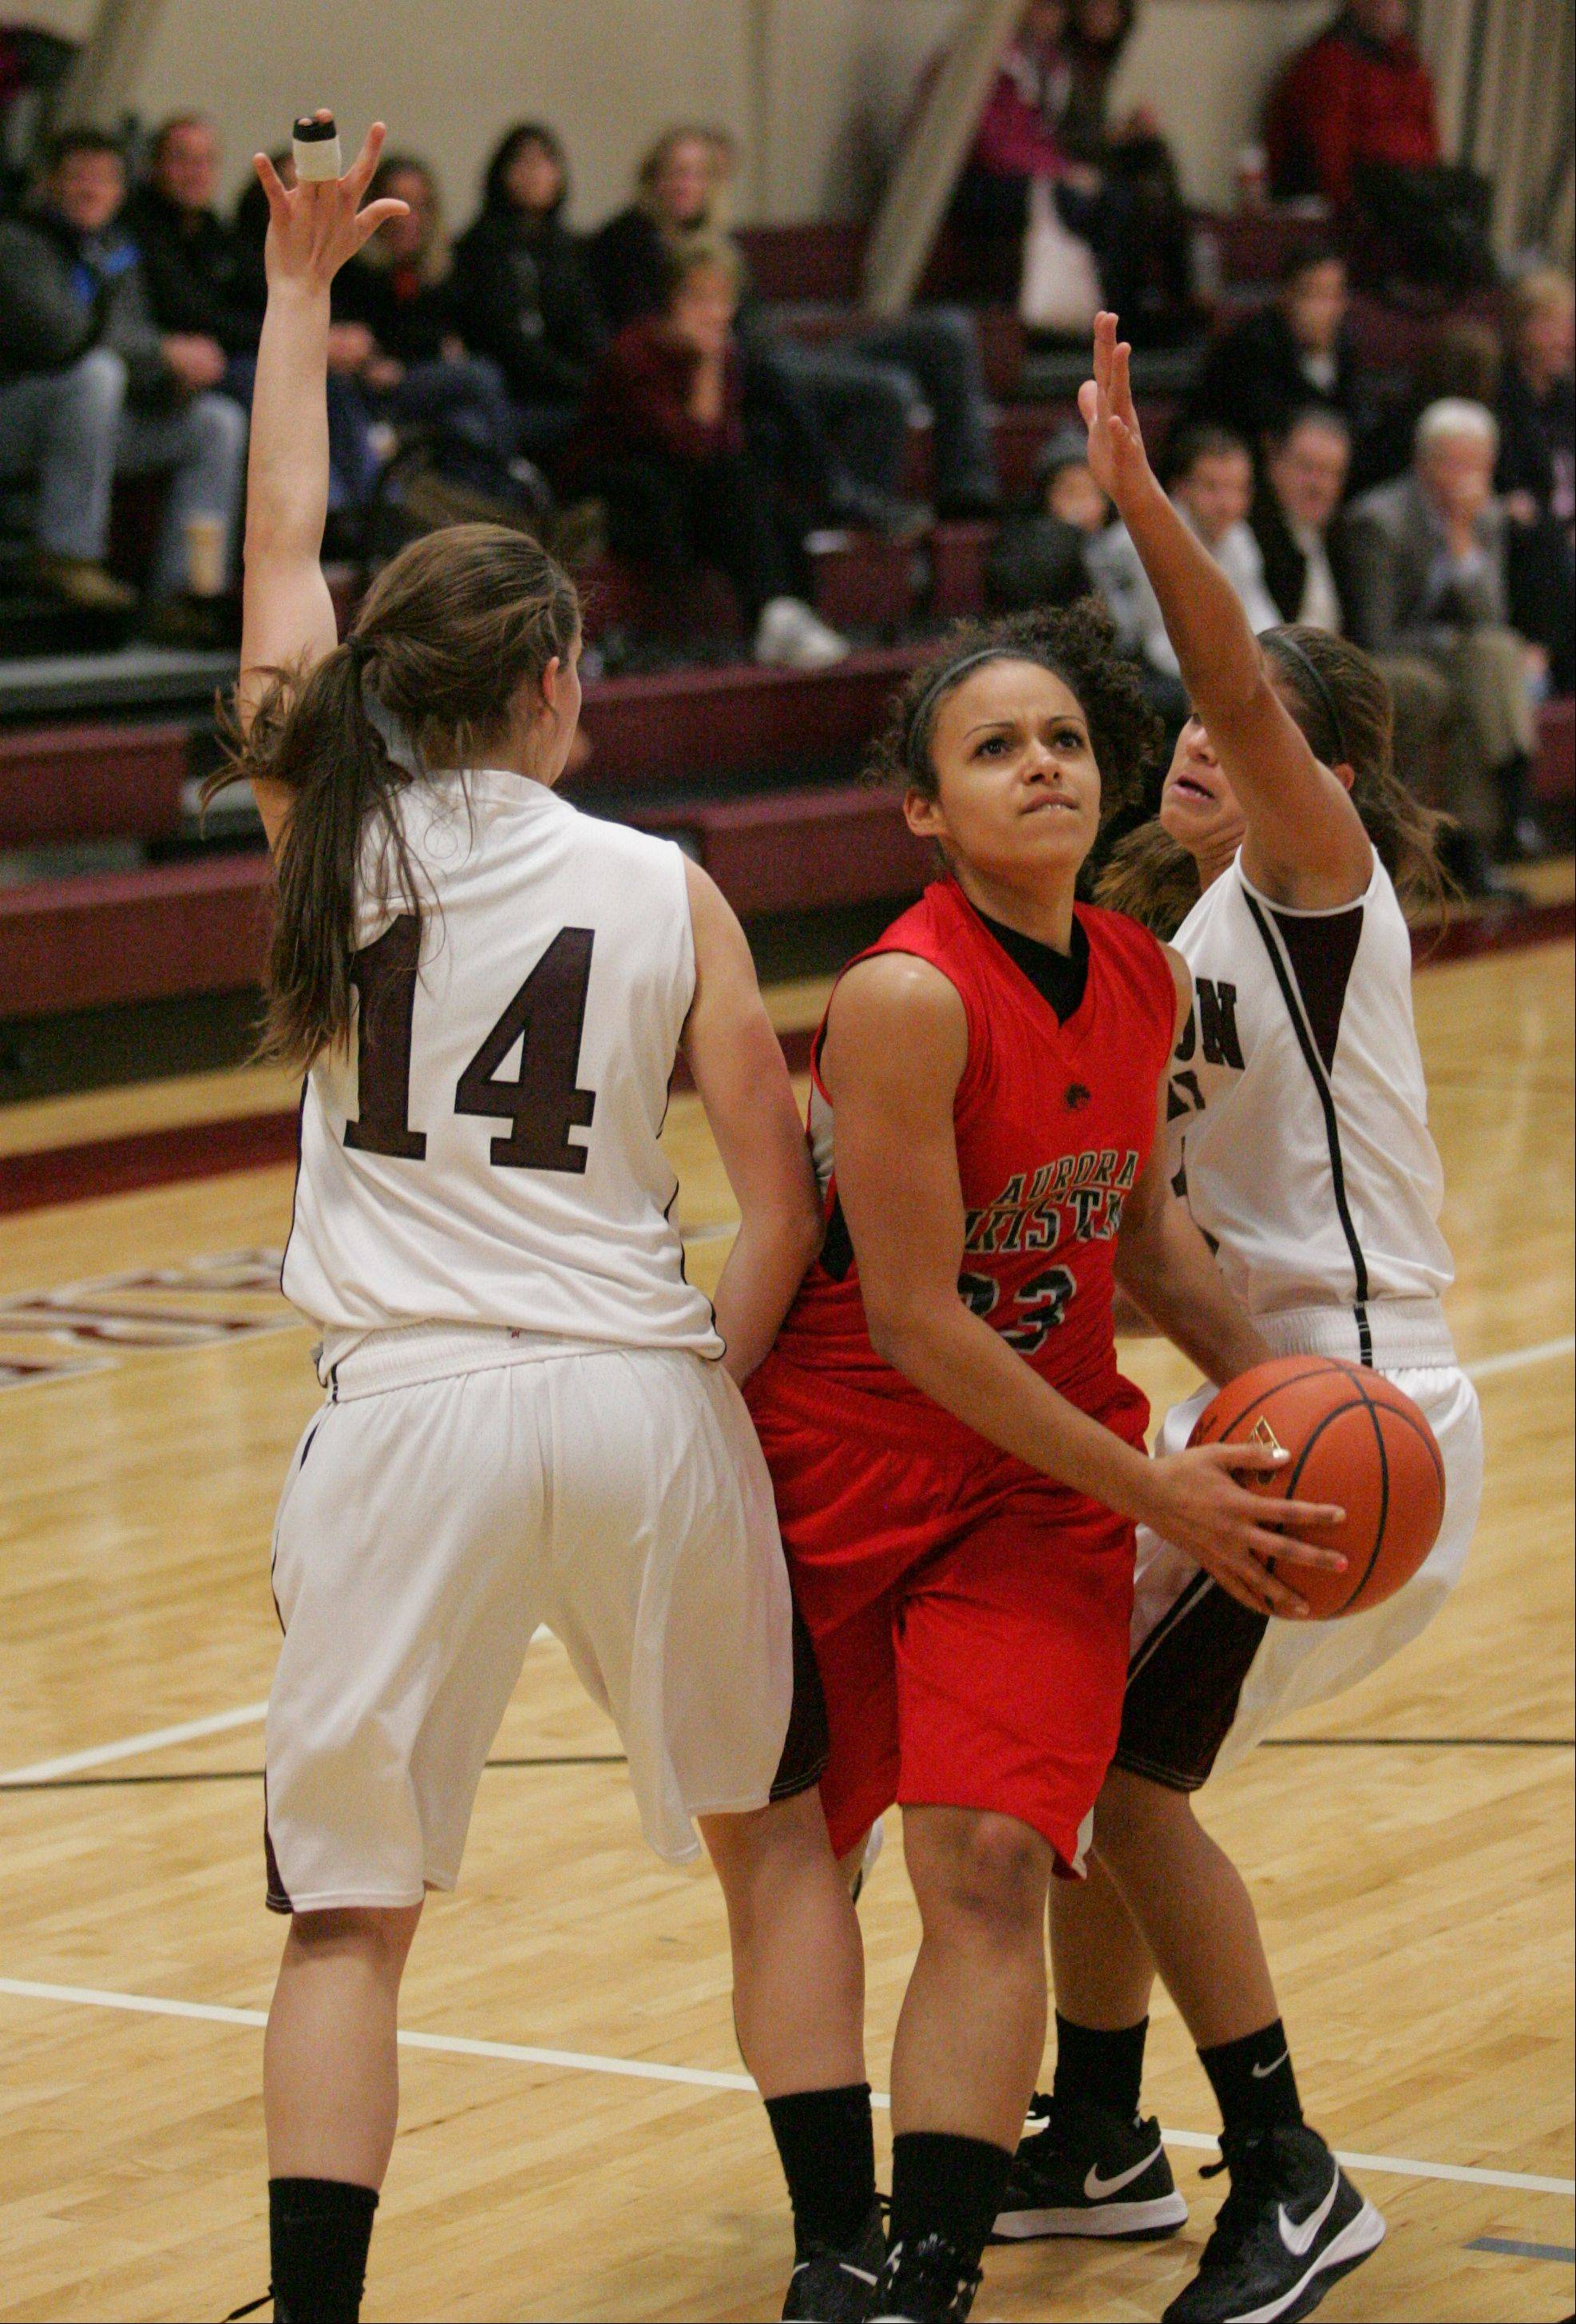 Images from the Wheaton Academy vs. Aurora Christian girls basketball game on Monday, Dec. 10, 2012.